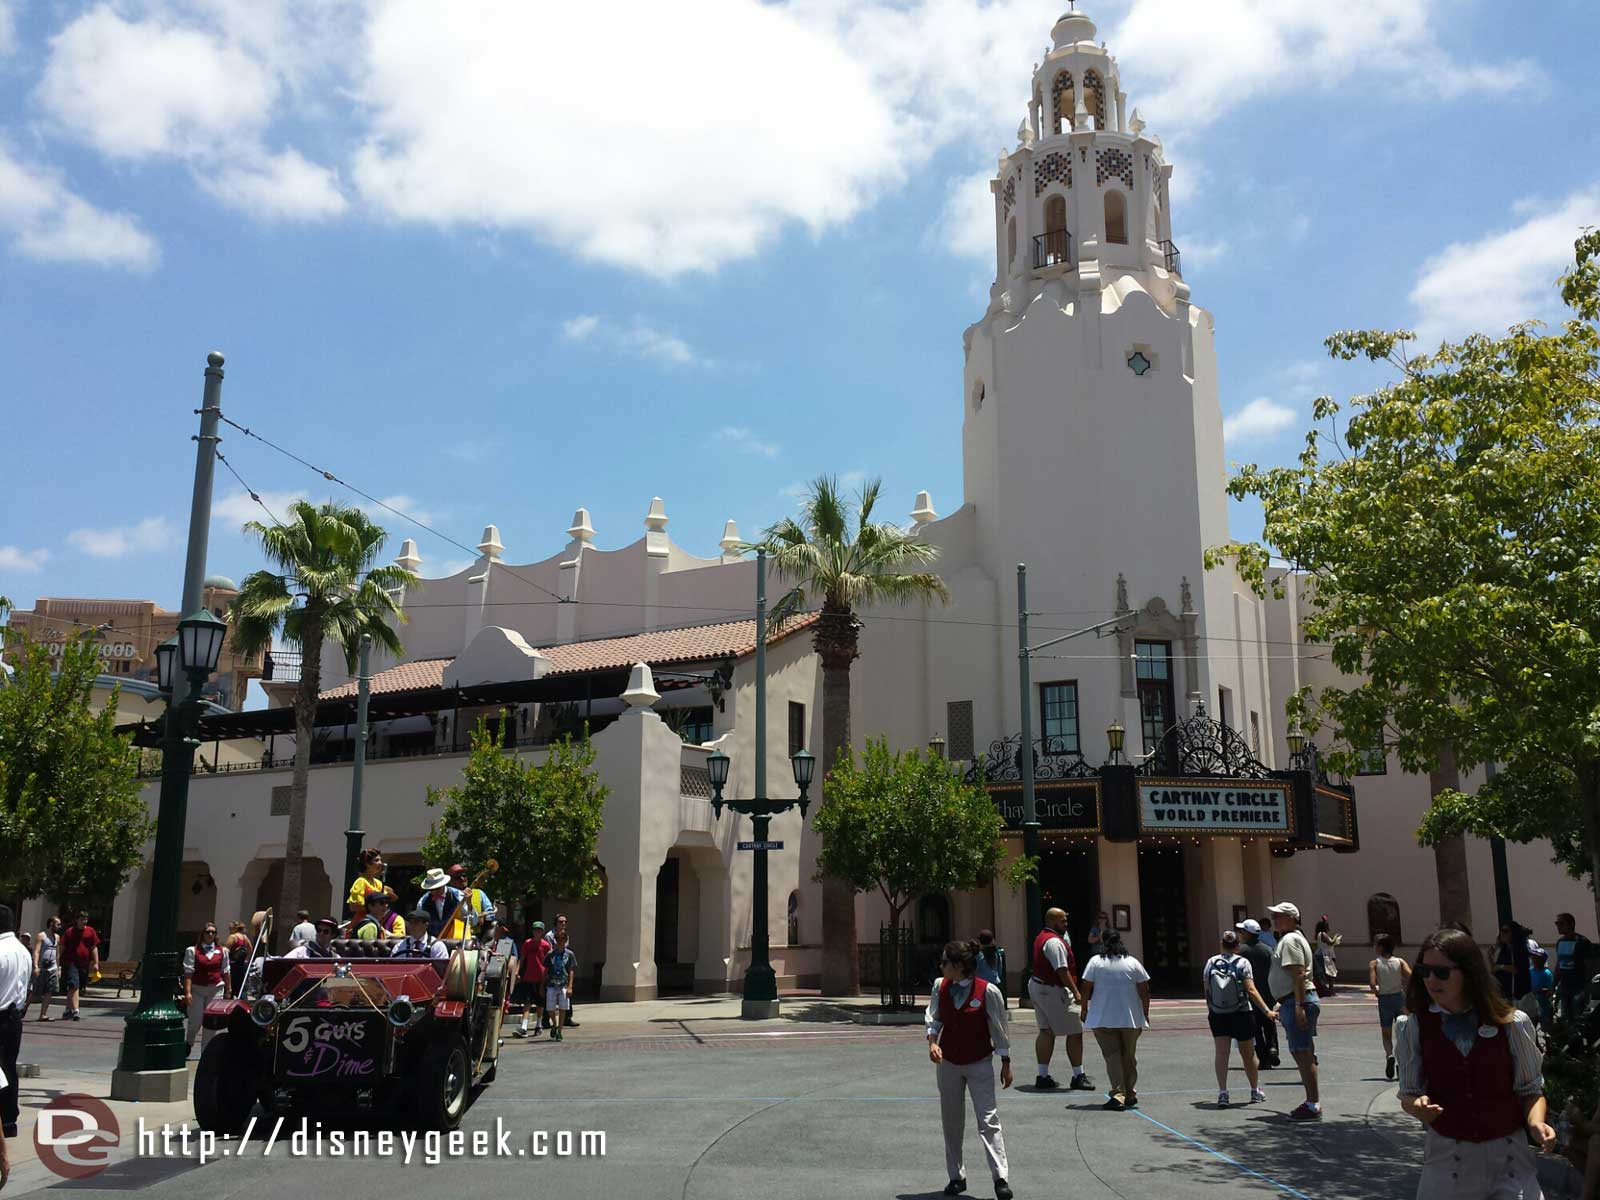 Just arrived at the #Disneyland Resort for the afternoon.  1st stop #BuenaVistaStreet